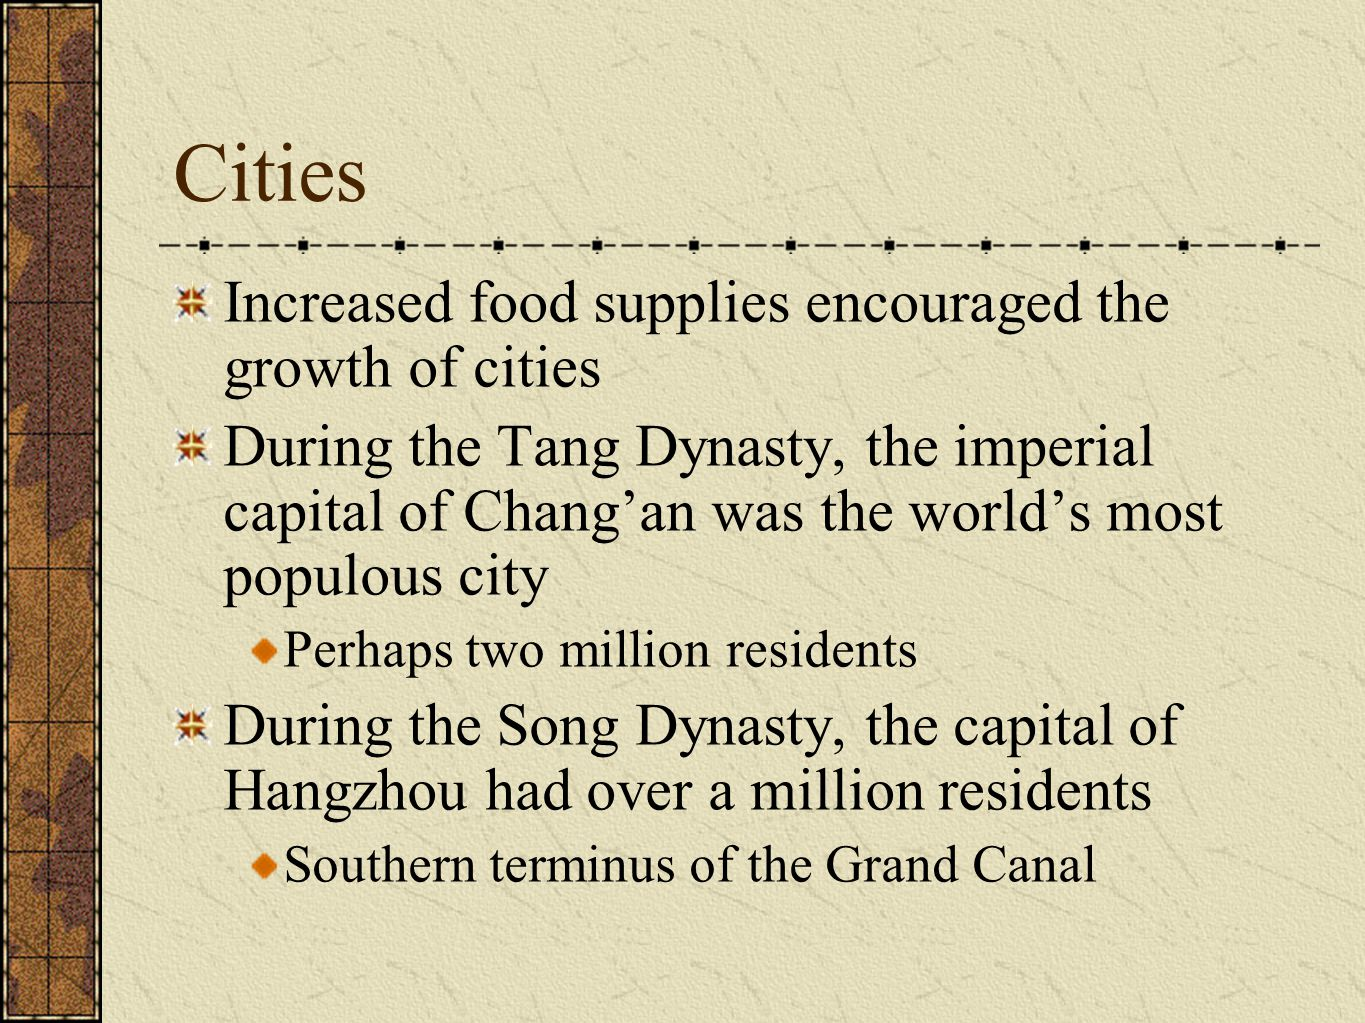 Cities Increased food supplies encouraged the growth of cities During the Tang Dynasty, the imperial capital of Chang'an was the world's most populous city Perhaps two million residents During the Song Dynasty, the capital of Hangzhou had over a million residents Southern terminus of the Grand Canal